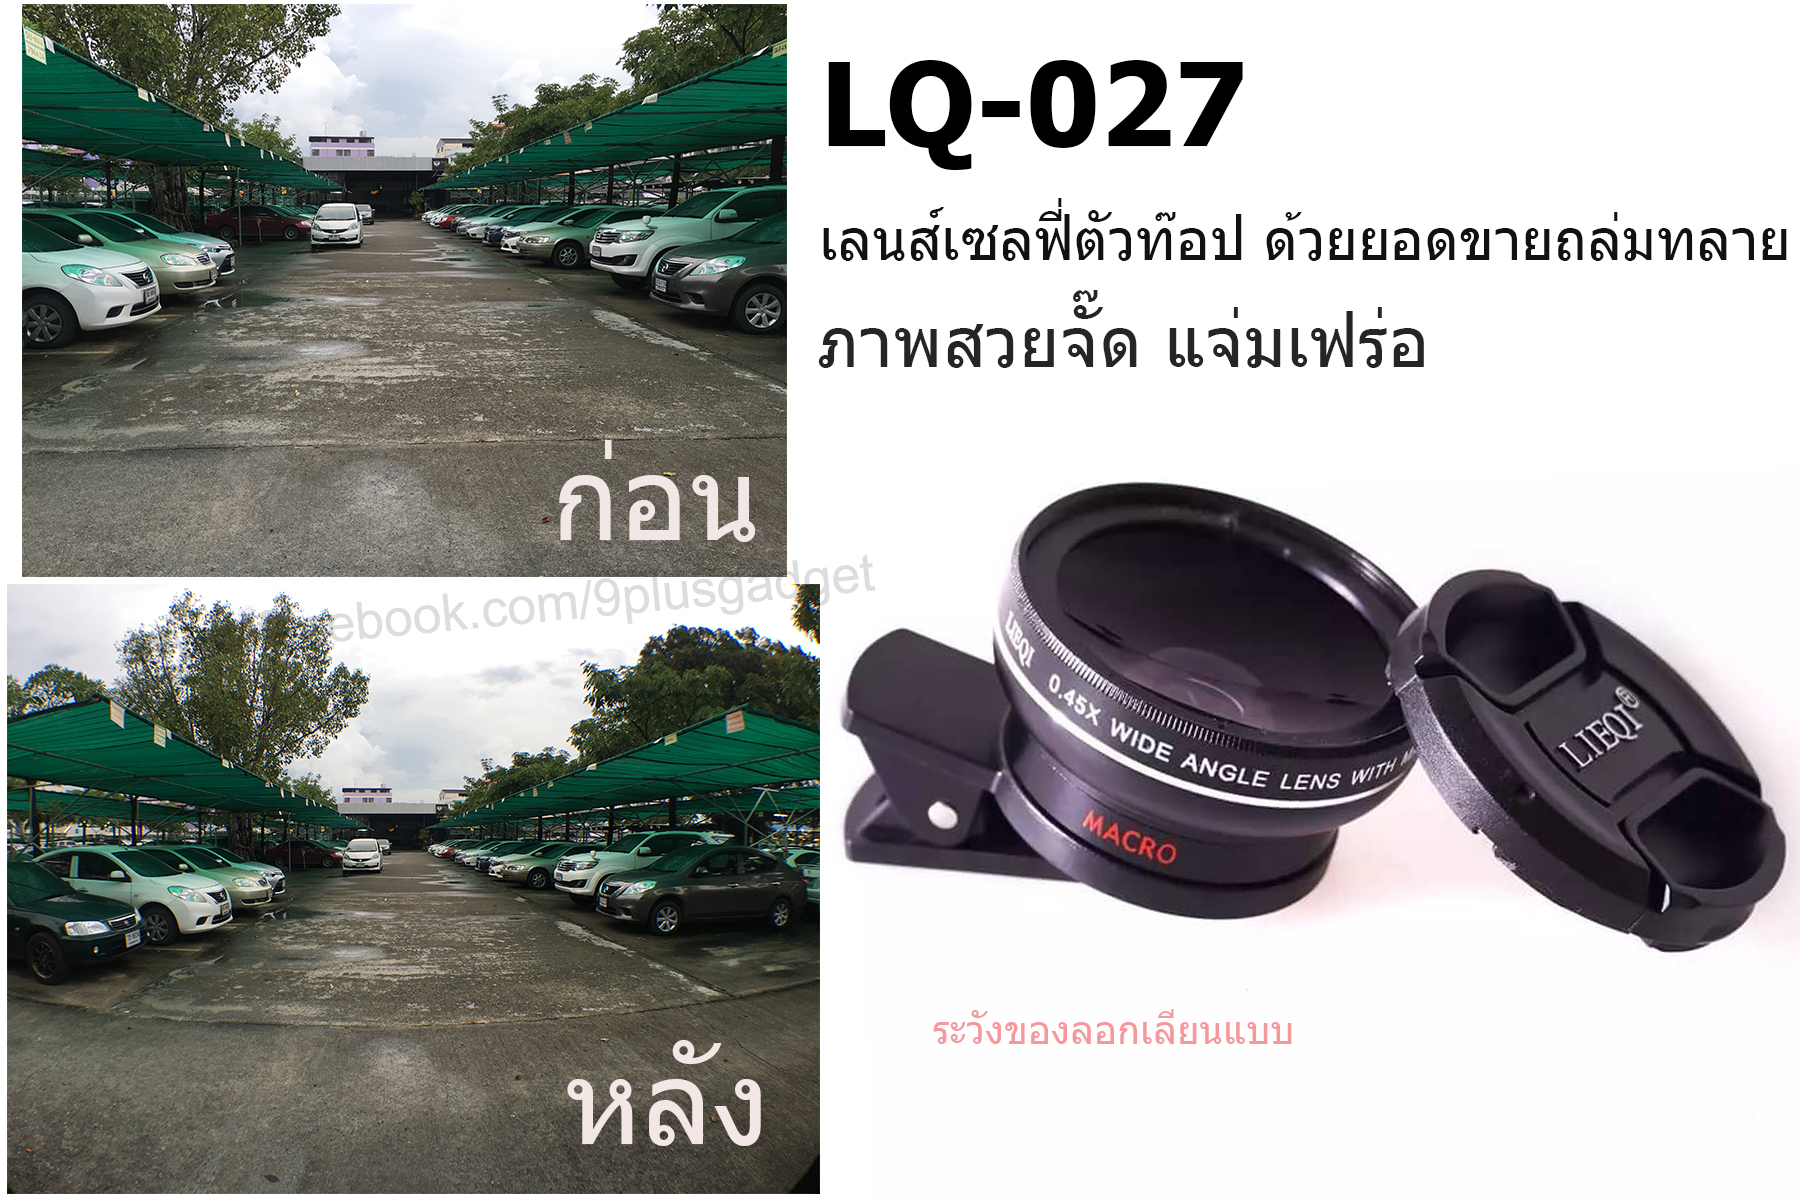 เลนส์มือถือ LIEQI LQ-027 2 in 1 Lens Super Wide 0.45x & Macro